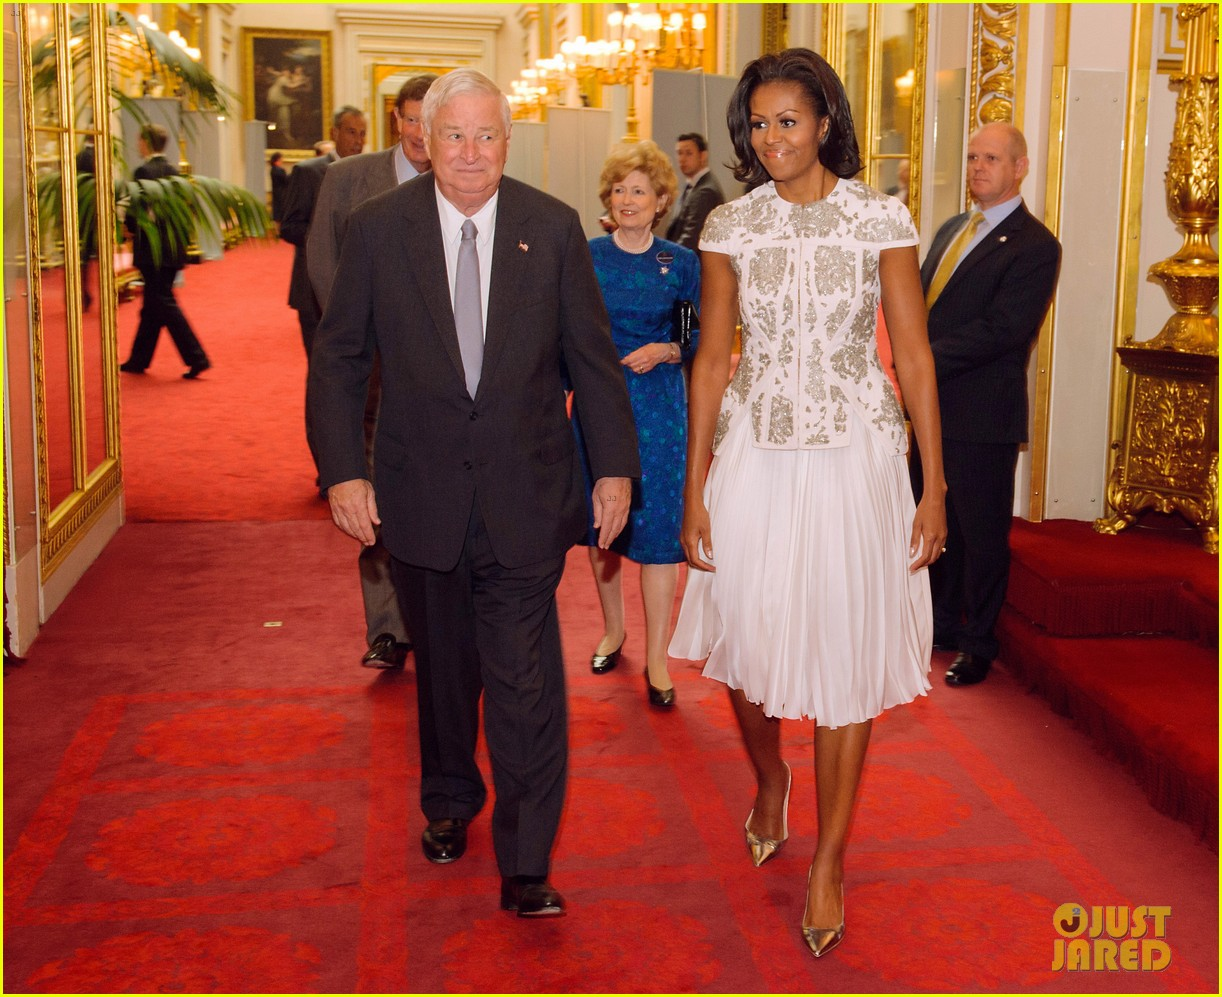 duchess kate michelle obama heads of state reception 01